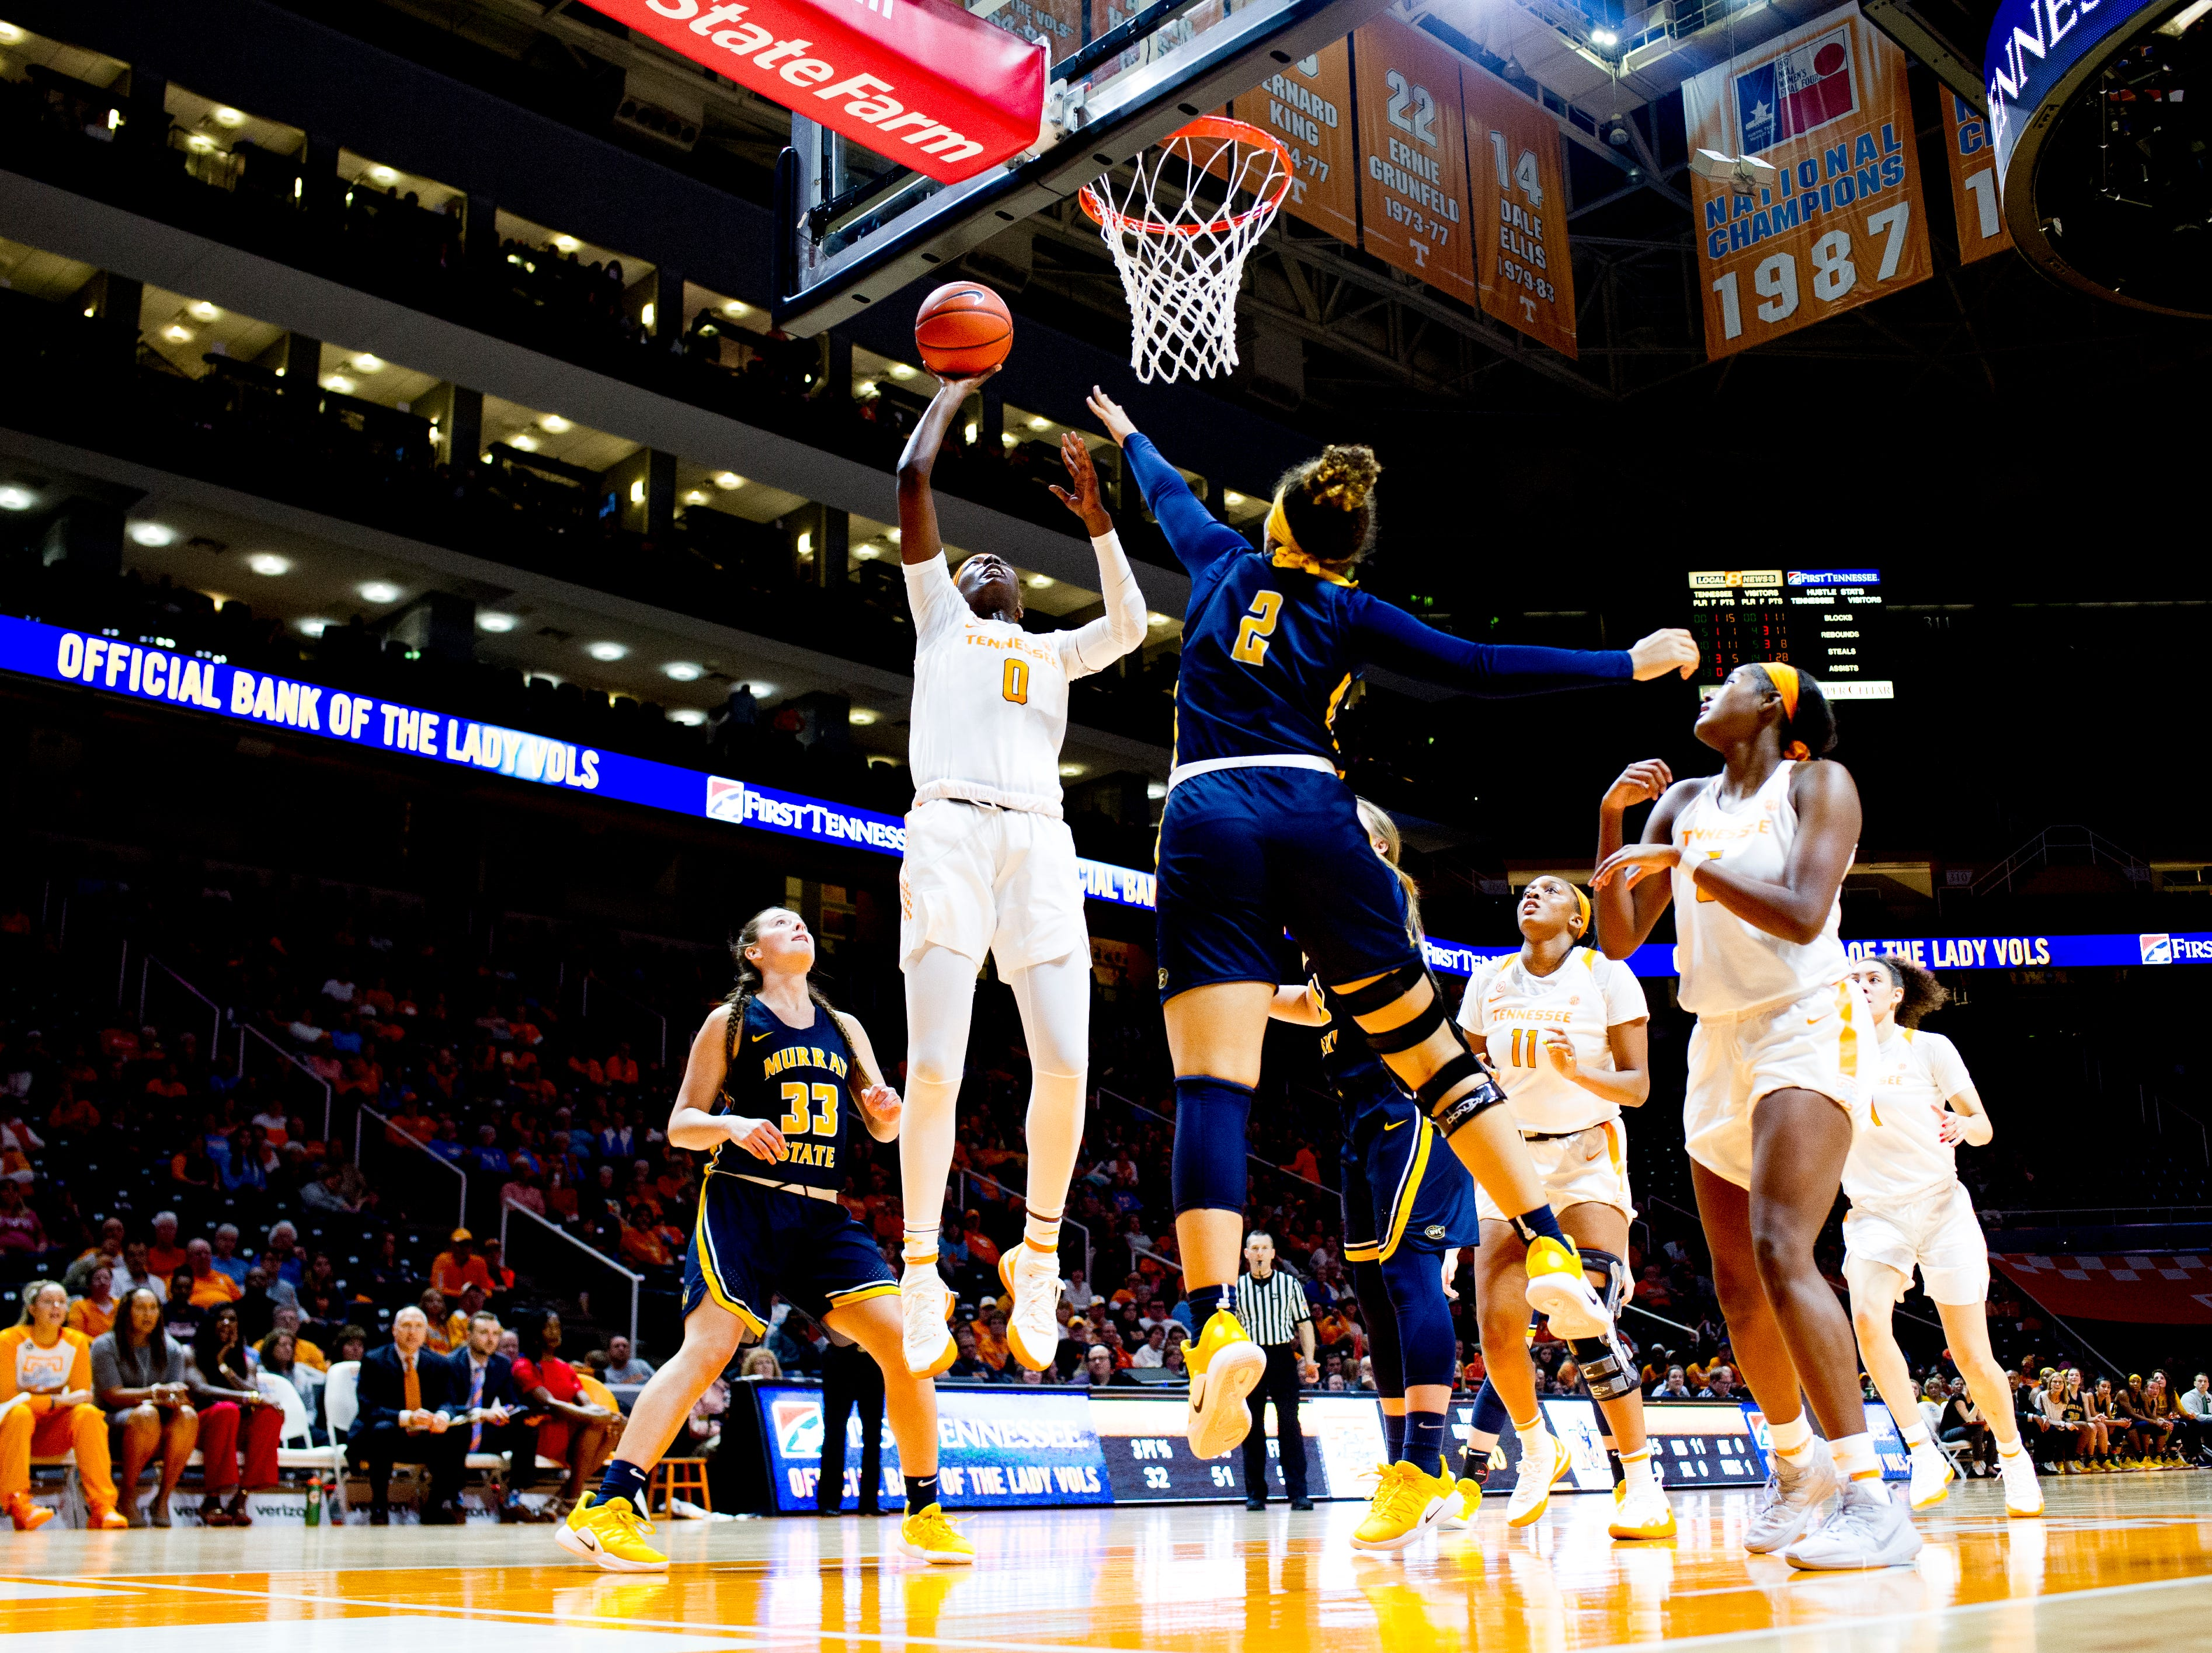 Tennessee guard/forward Rennia Davis (0) shoots a layup during a game between the Tennessee Lady Vols and Murray State at Thompson-Boling Arena in Knoxville, Tennessee on Friday, December 28, 2018.